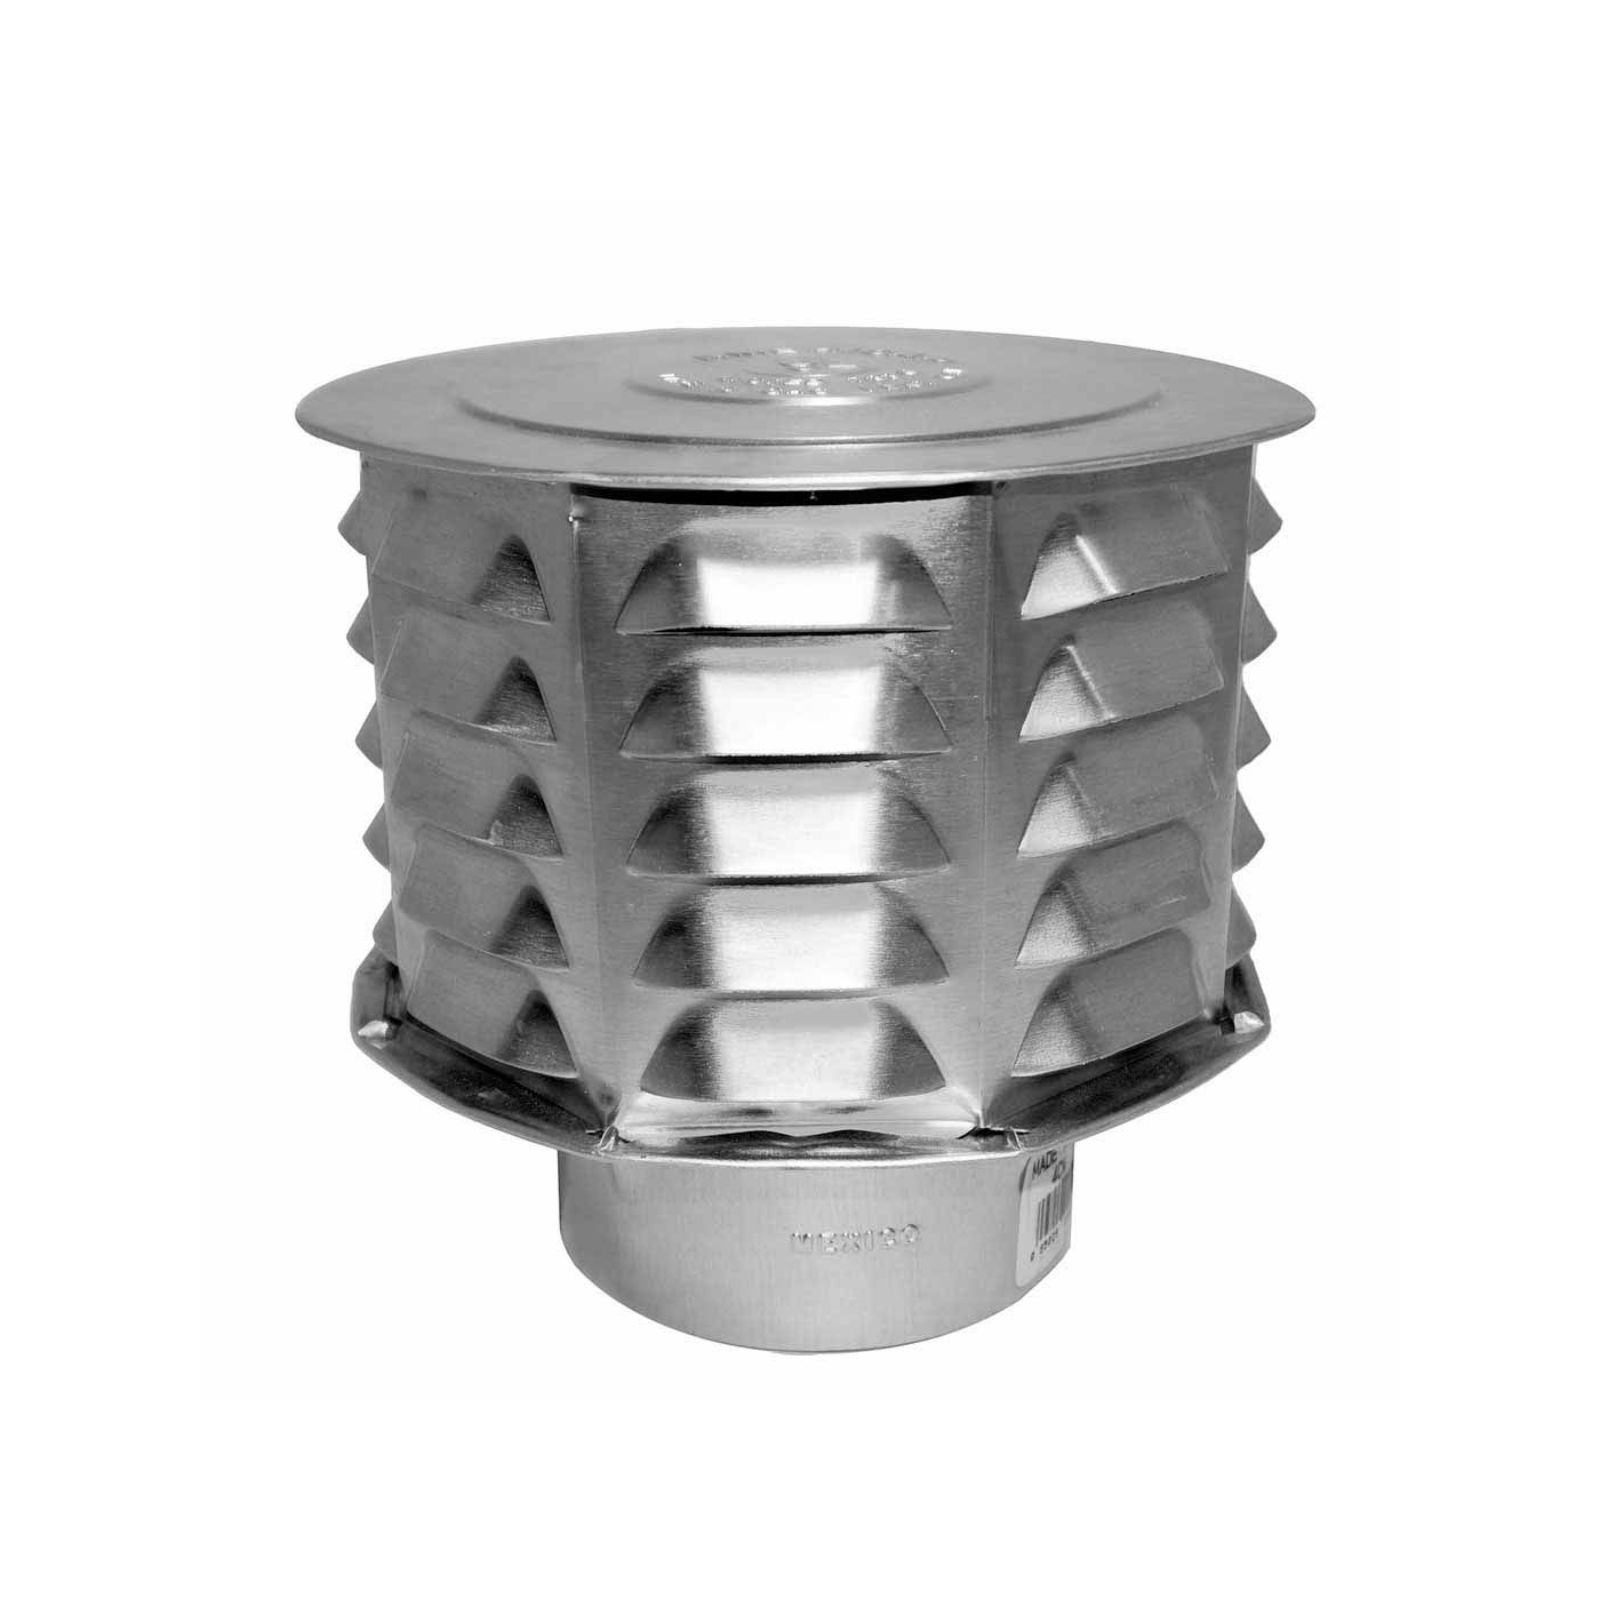 "AmeriVent 6CW - Universal Cap 6"", Louvered"